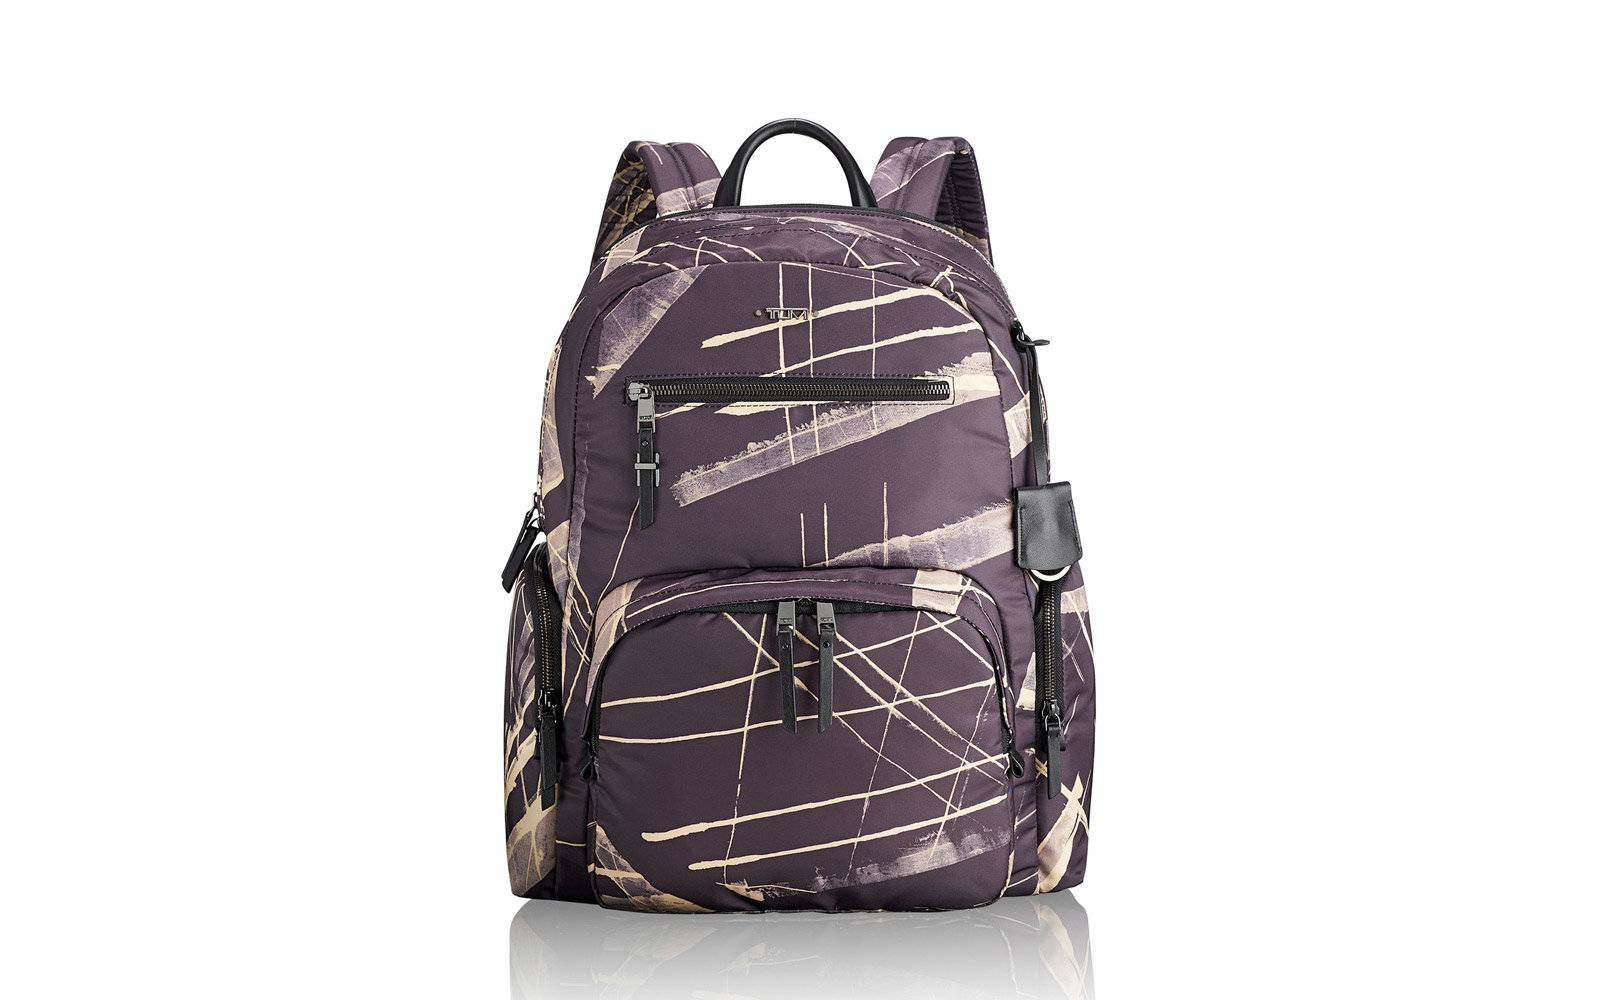 Laptop Backpack Bag Style Tumi Voyageur